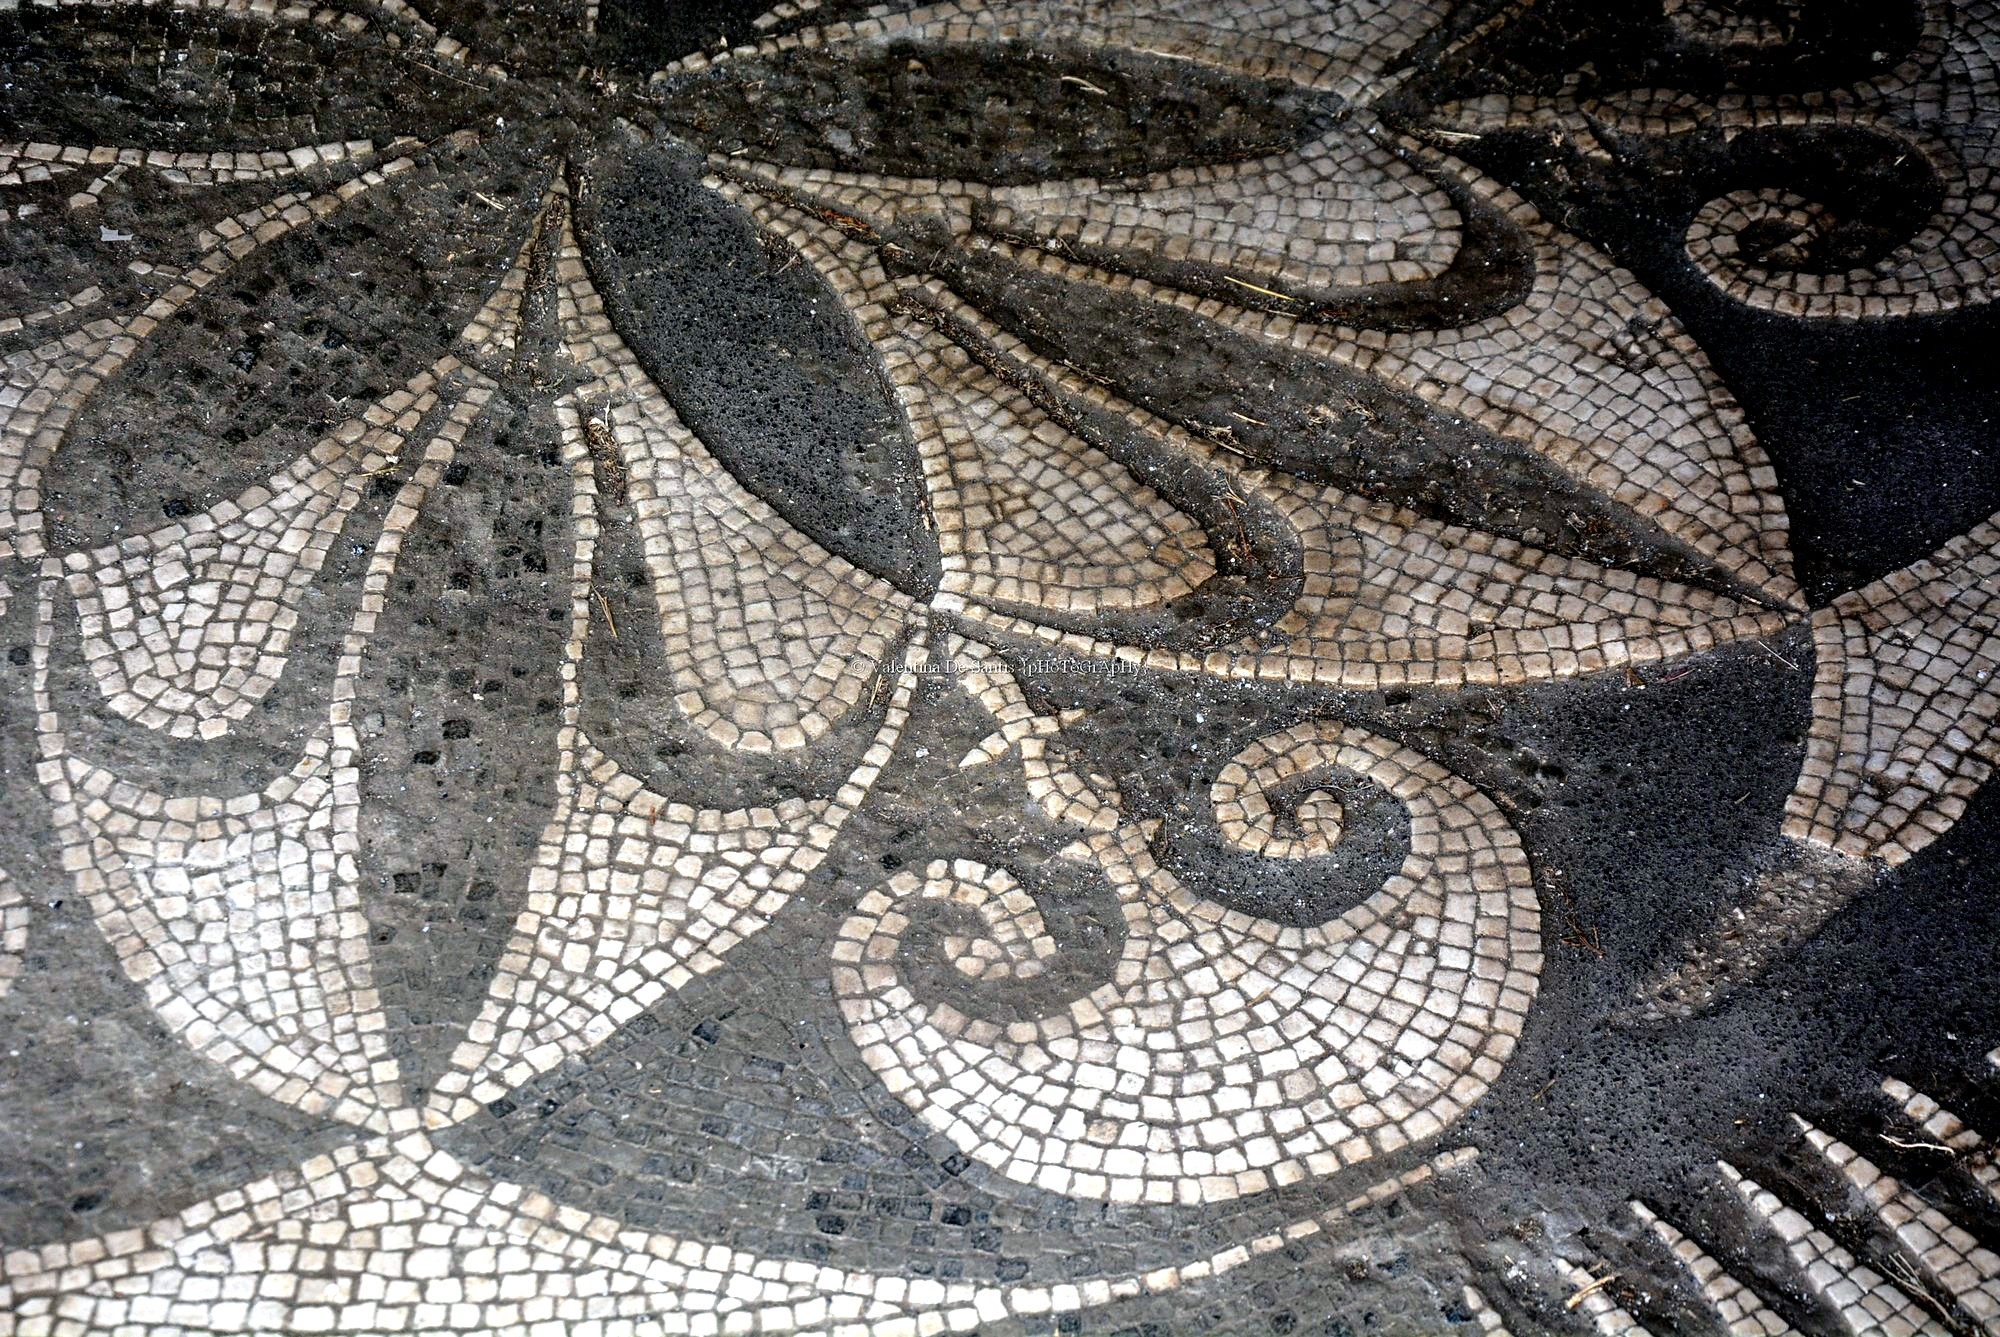 mosaics in pompeii A mosaic from the roman town of pompeii, buried by the eruption of mt vesuvius in 79 ce such fine mosaics were a common feature of floors in the villas of the town.